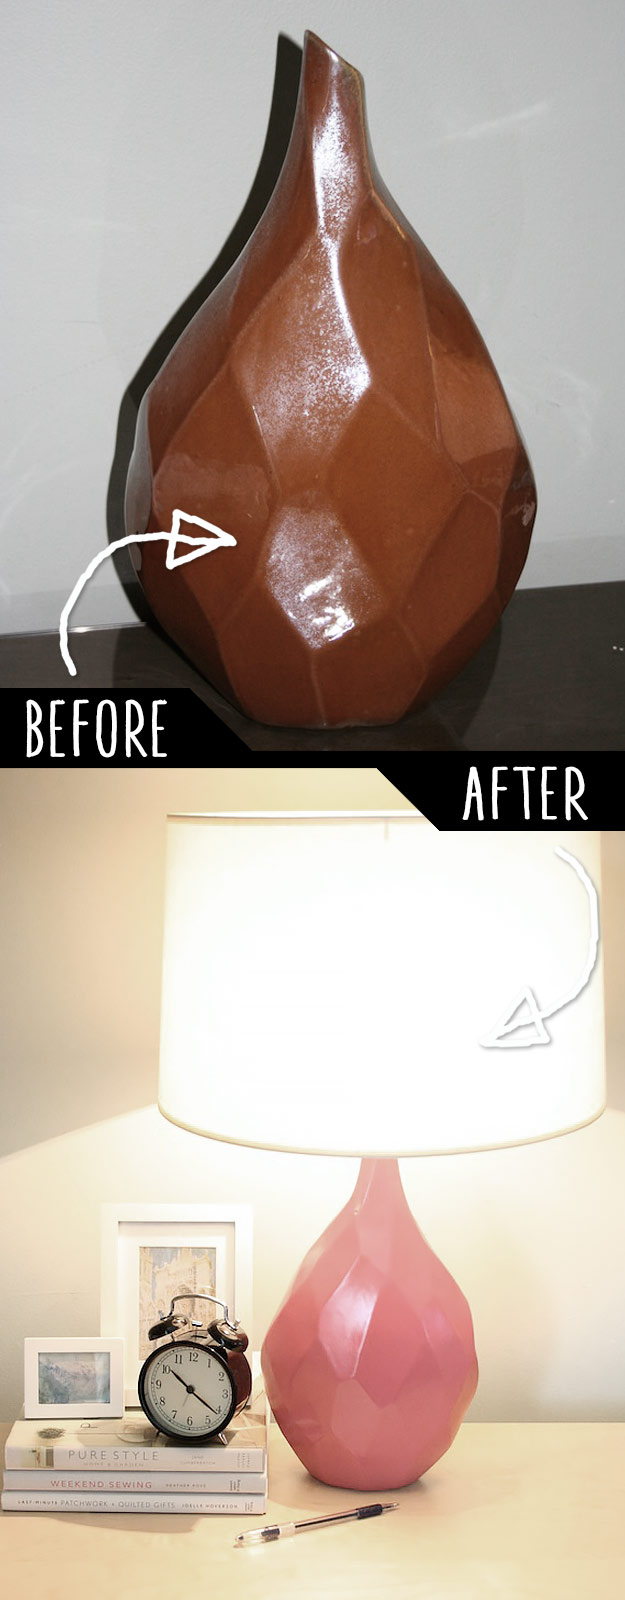 DIY Furniture Hacks | Old Unused Vase into an Adorable Table Lamp | Cool Ideas for Creative Do It Yourself Furniture | Cheap Home Decor Ideas for Bedroom, Bathroom, Living Room, Kitchen #diy